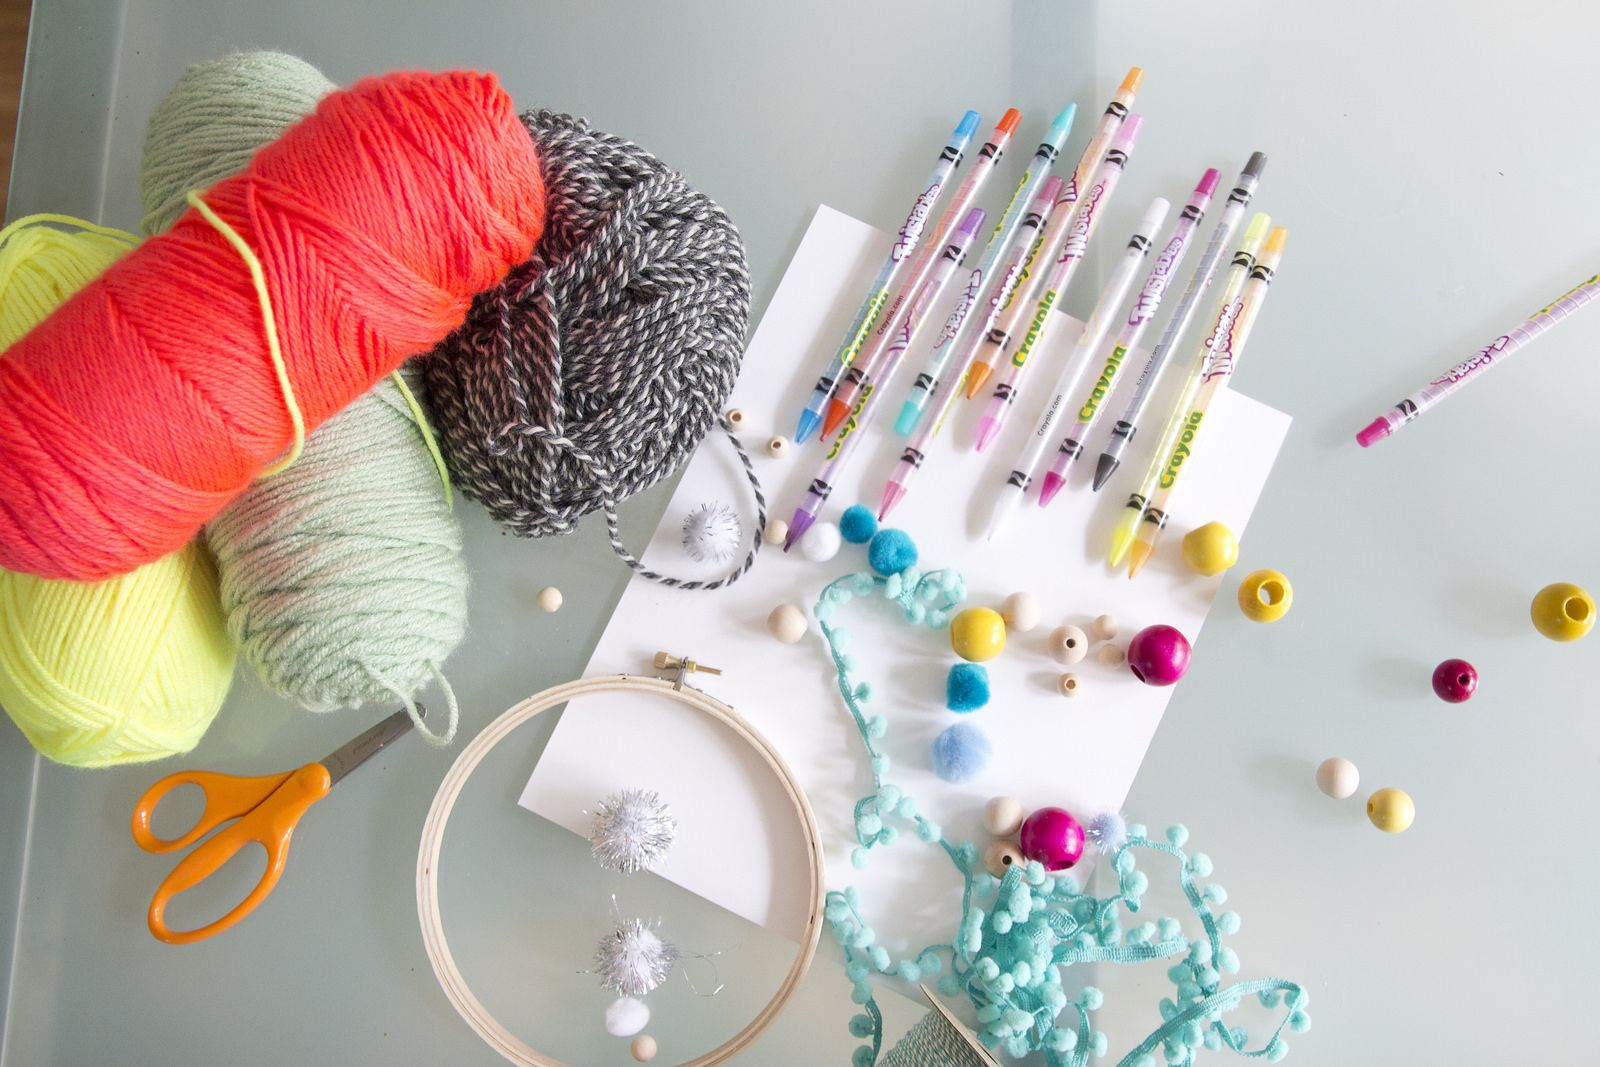 Dream Catcher Materials Crafts With Kids  Dream Catchers Via Jen Lularichardson  Diy